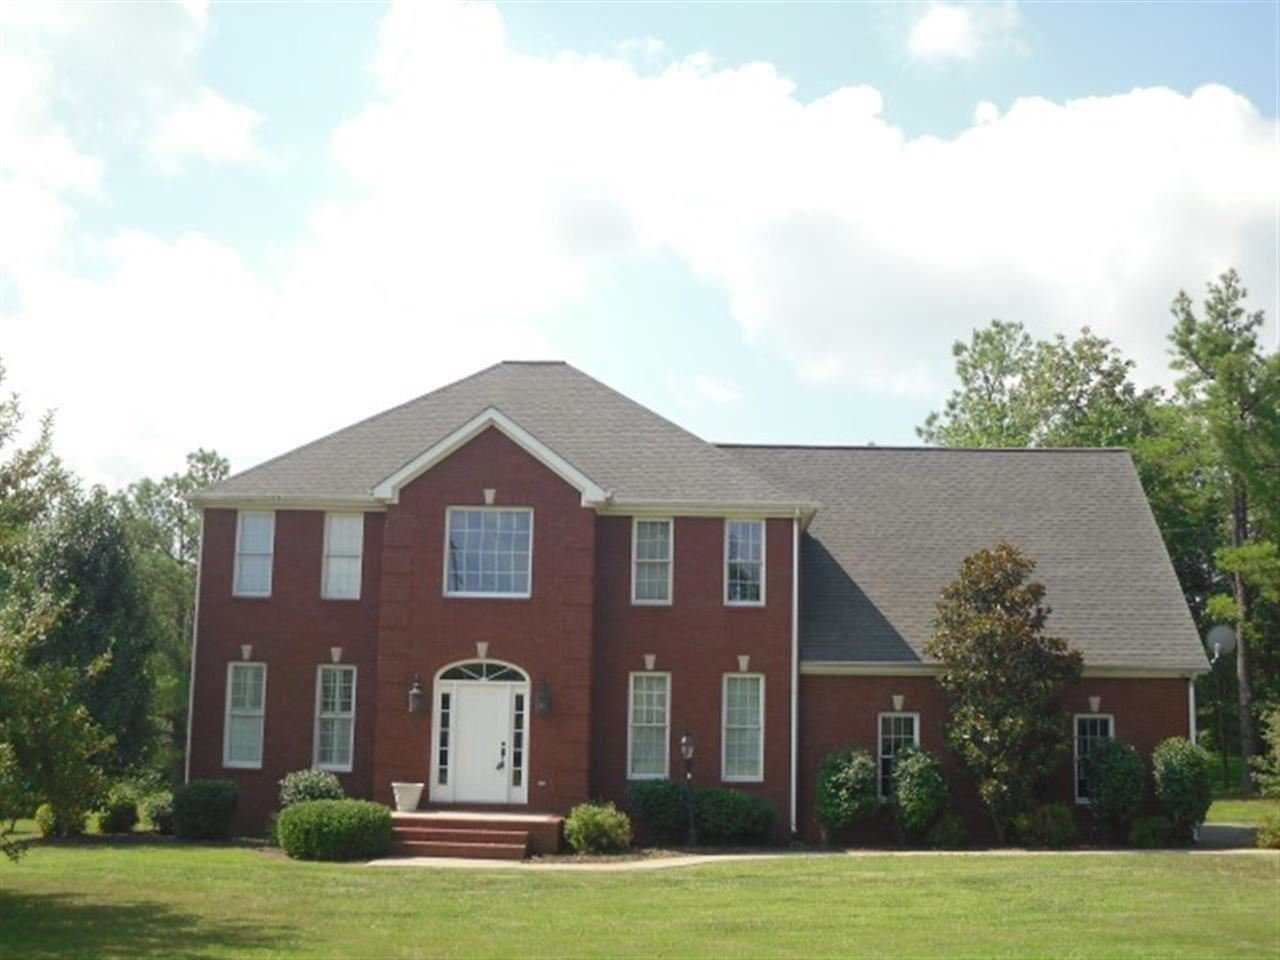 Rental Homes for Rent, ListingId:29294000, location: 6870 OLD CALVERT CITY ROAD Paducah 42003